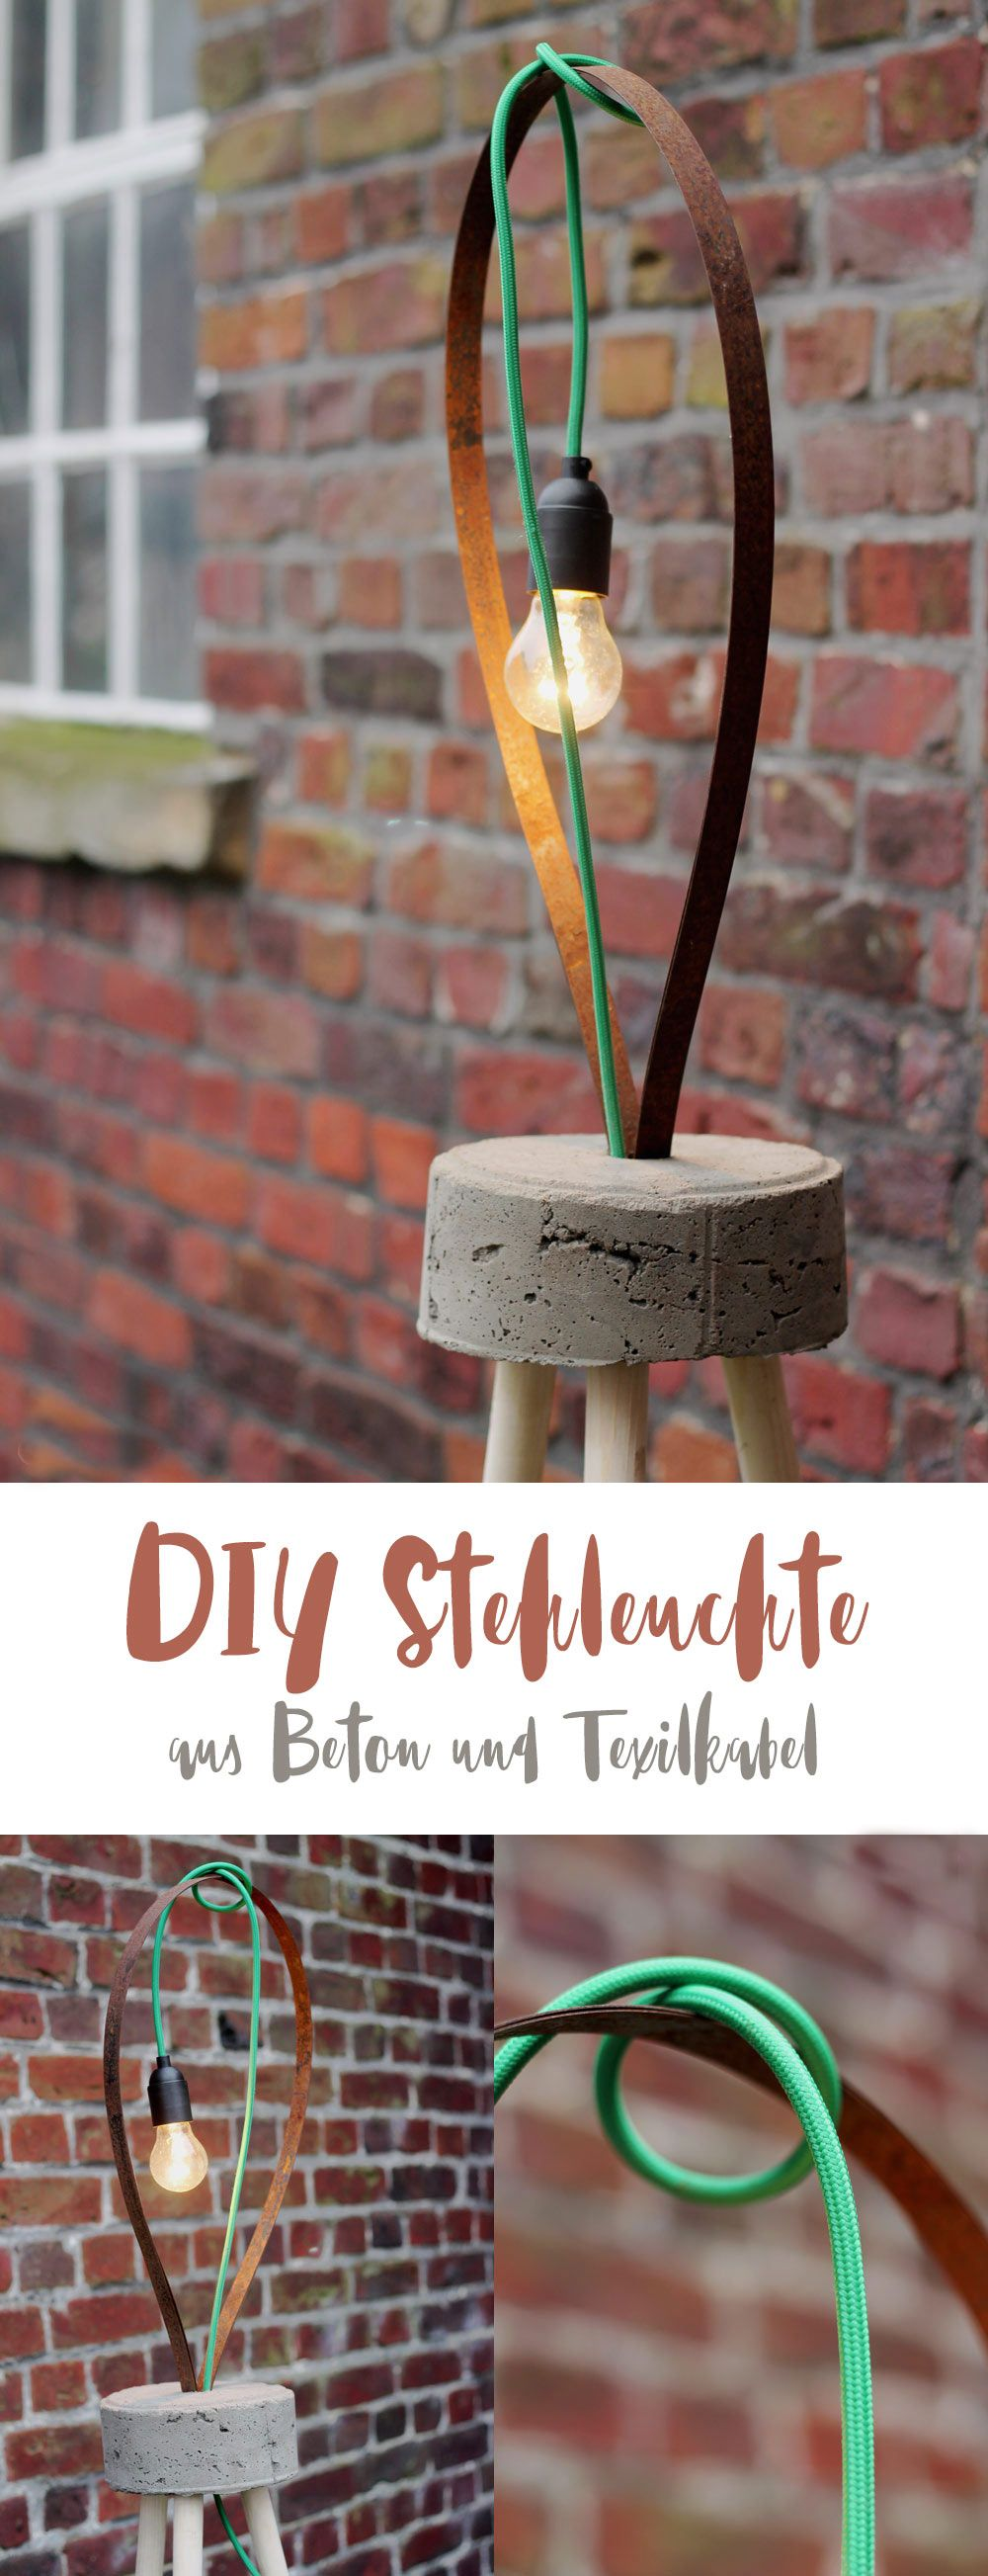 diy lampe mit textilkabel und beton diy stehleuchte diy m bel und heimwerken pinterest. Black Bedroom Furniture Sets. Home Design Ideas